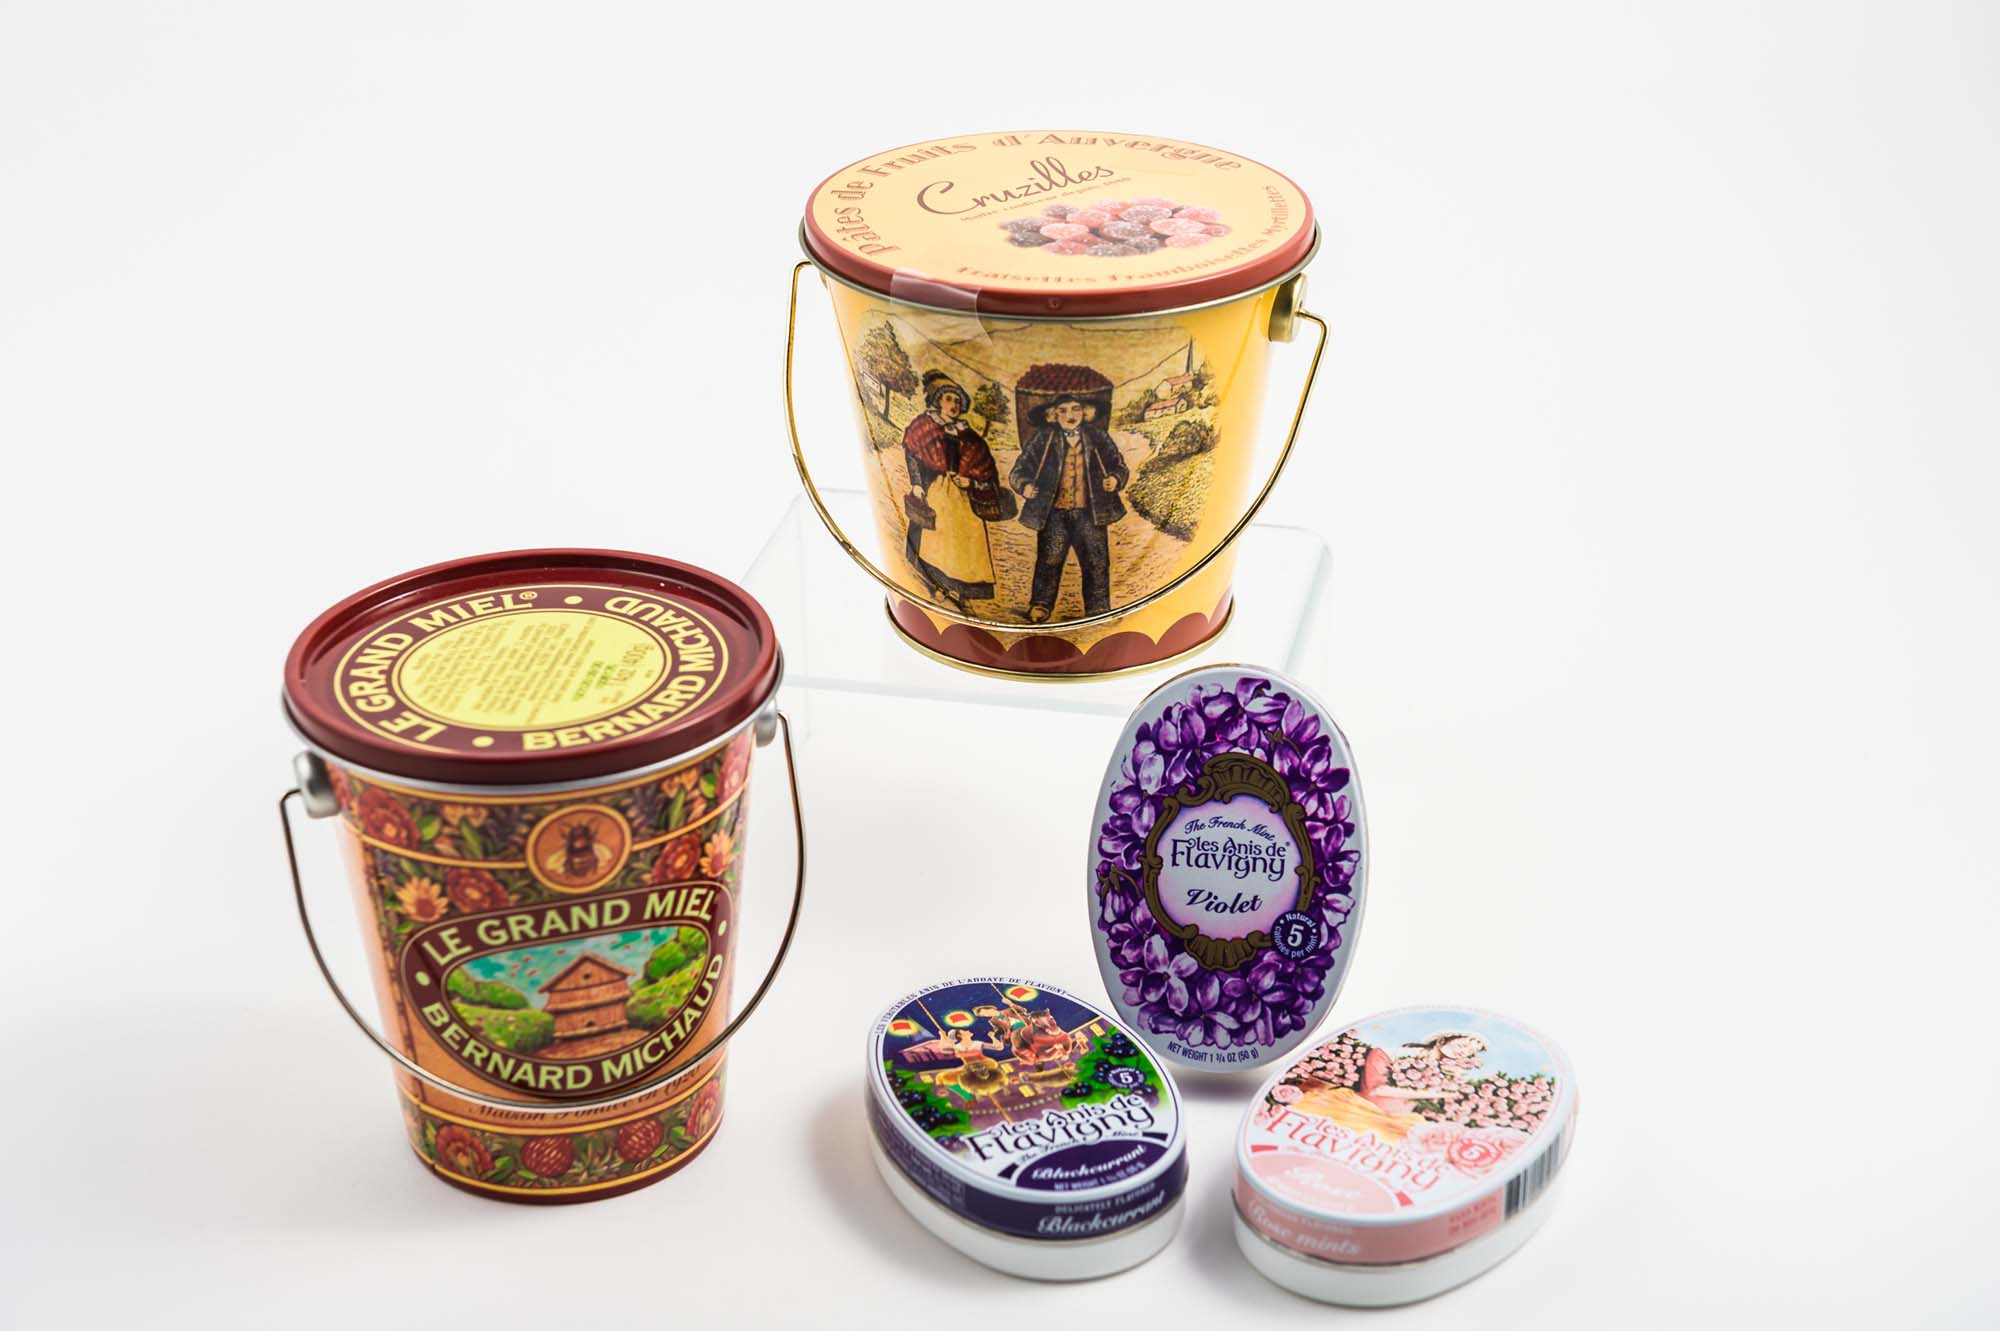 French Treats in Keepsake Tins